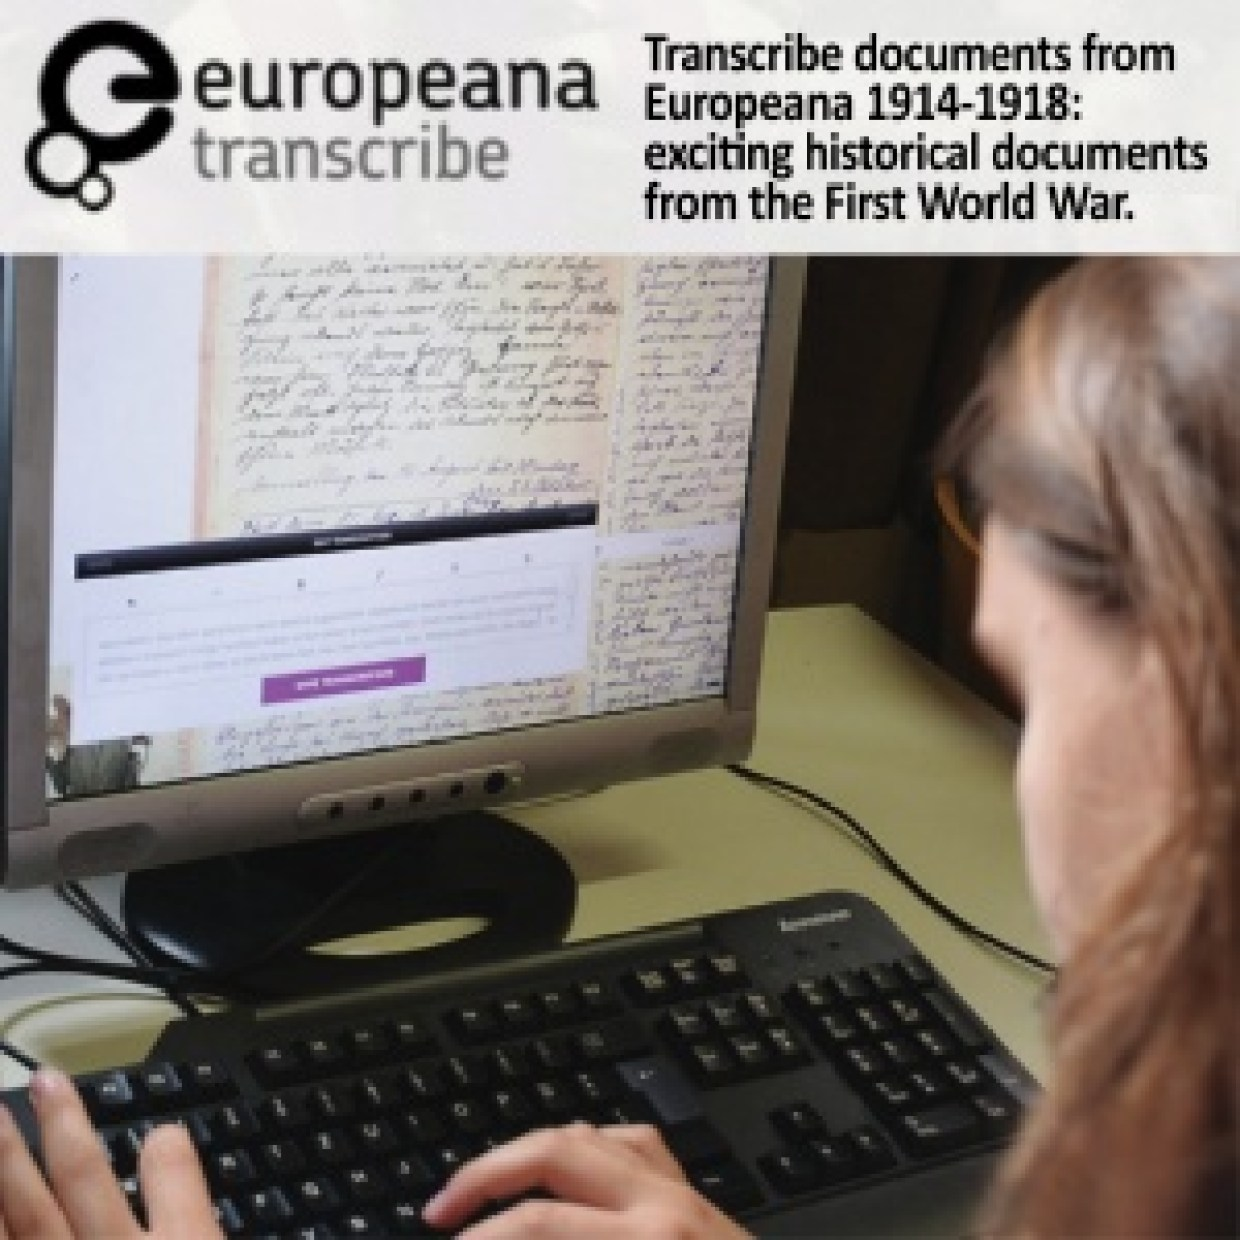 genealogy volunteer transcription WWI documents